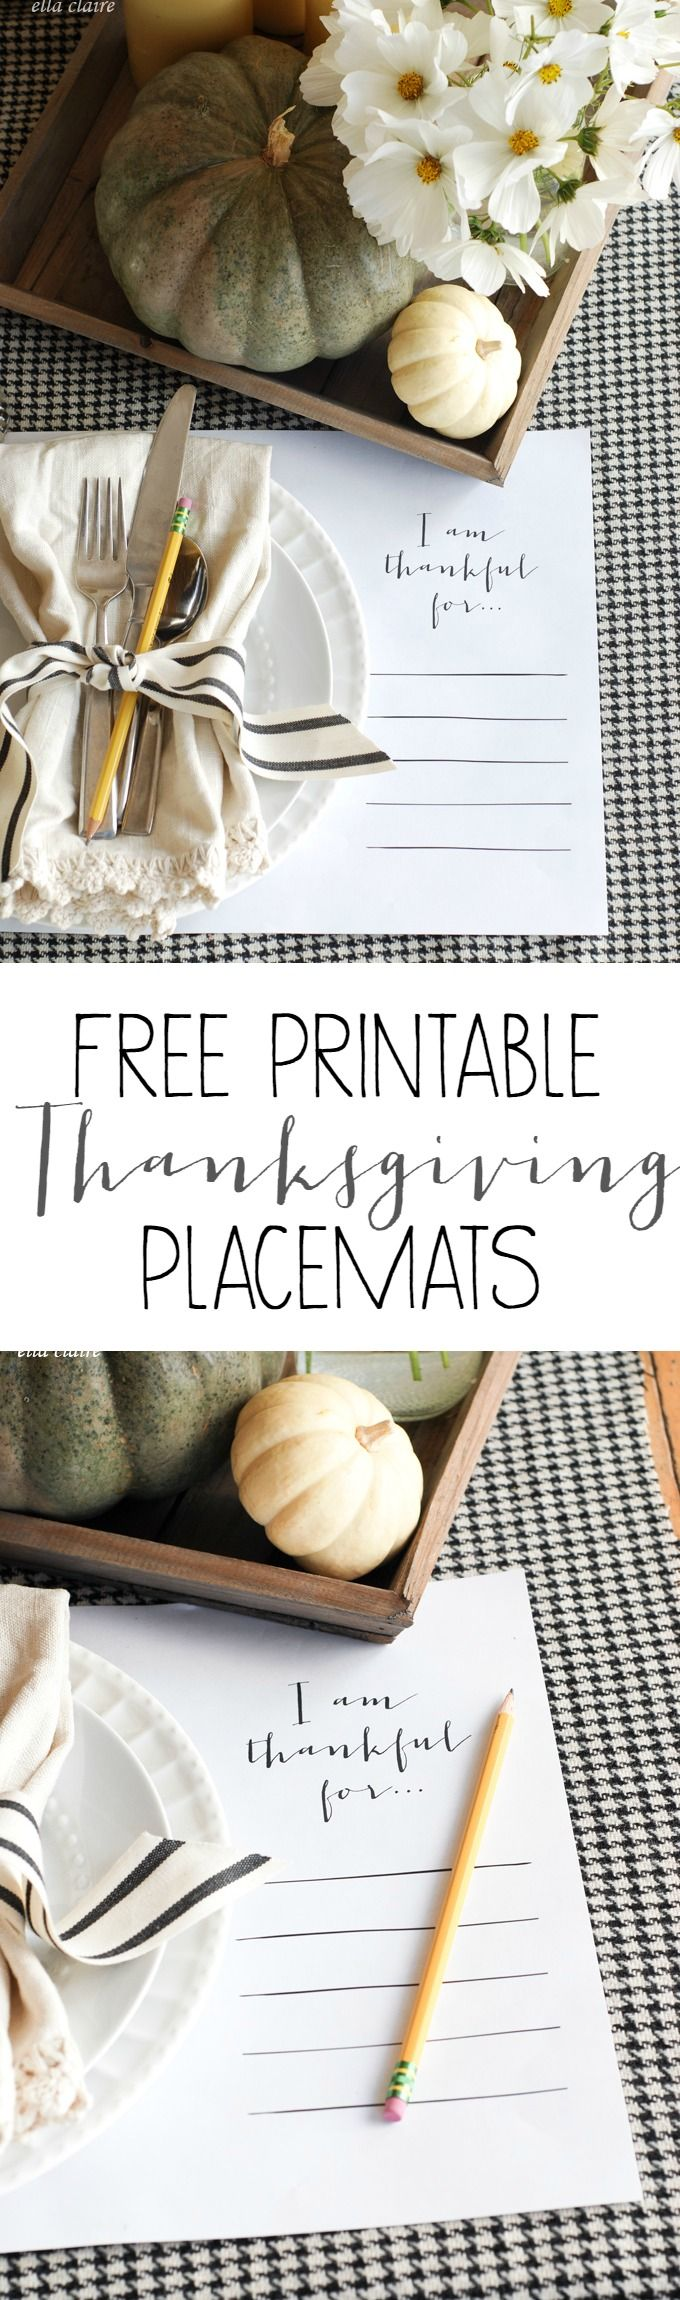 Free Printable 11x17 Thanksgiving Placemats   I am thankful for...